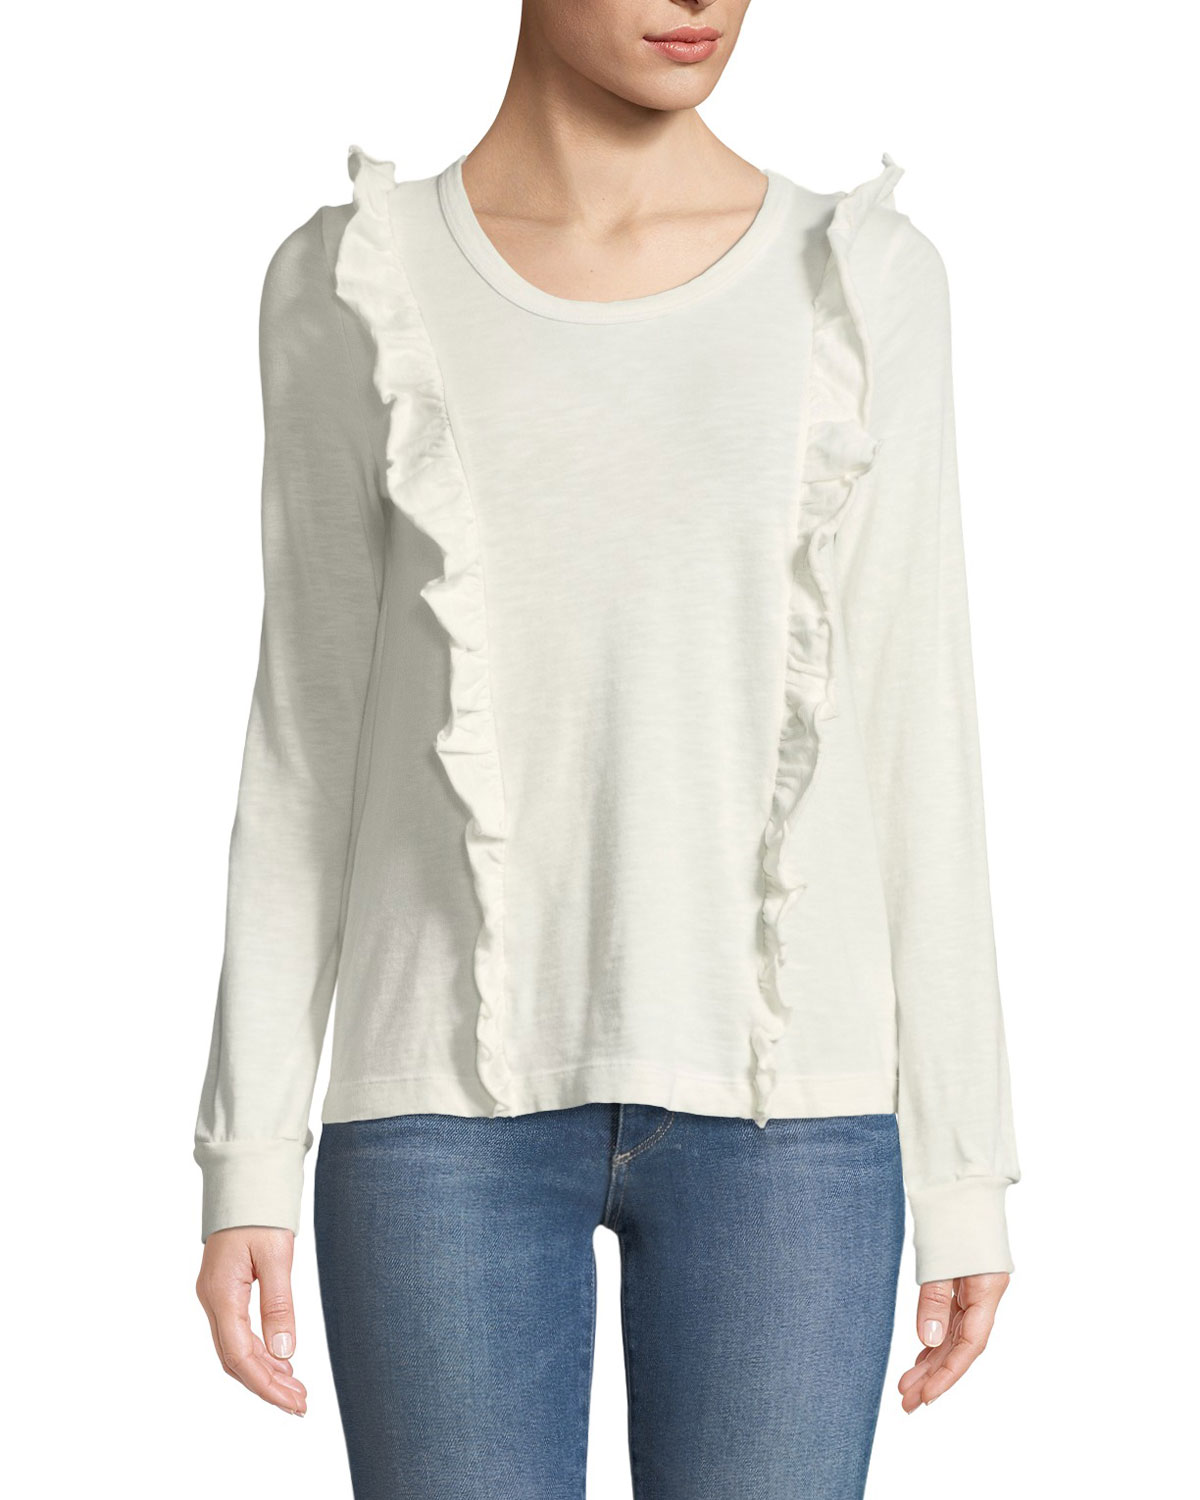 Crewneck Long-Sleeve Top with Ruffle Trim